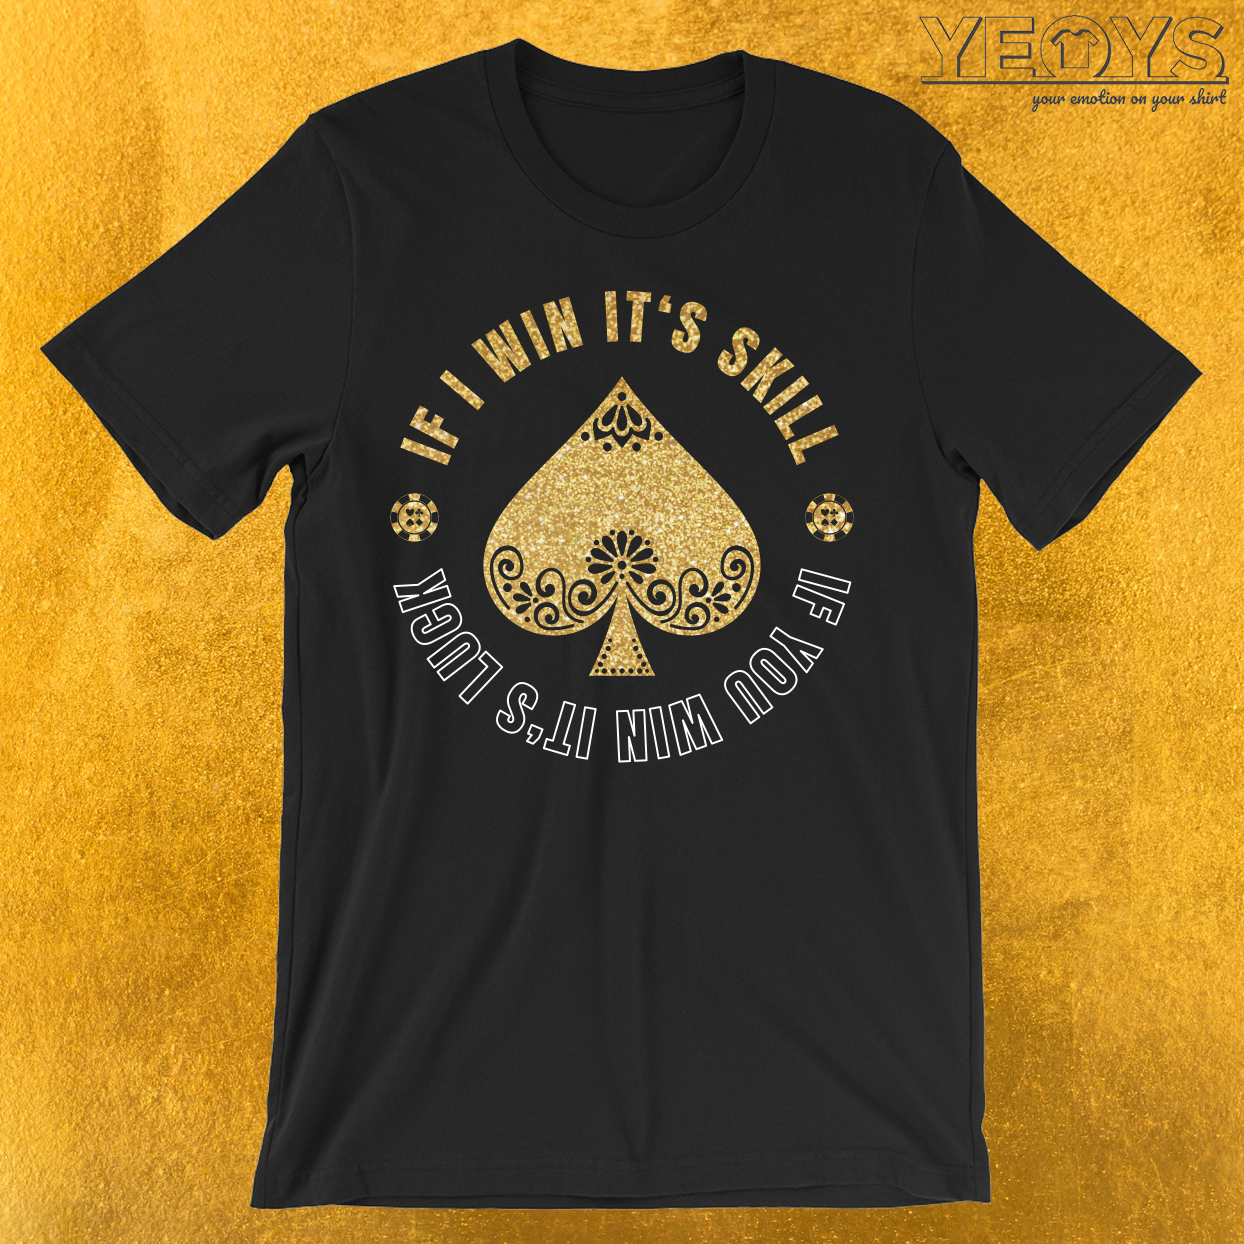 If I Win It's Skill If You Win It's Luck T-Shirt